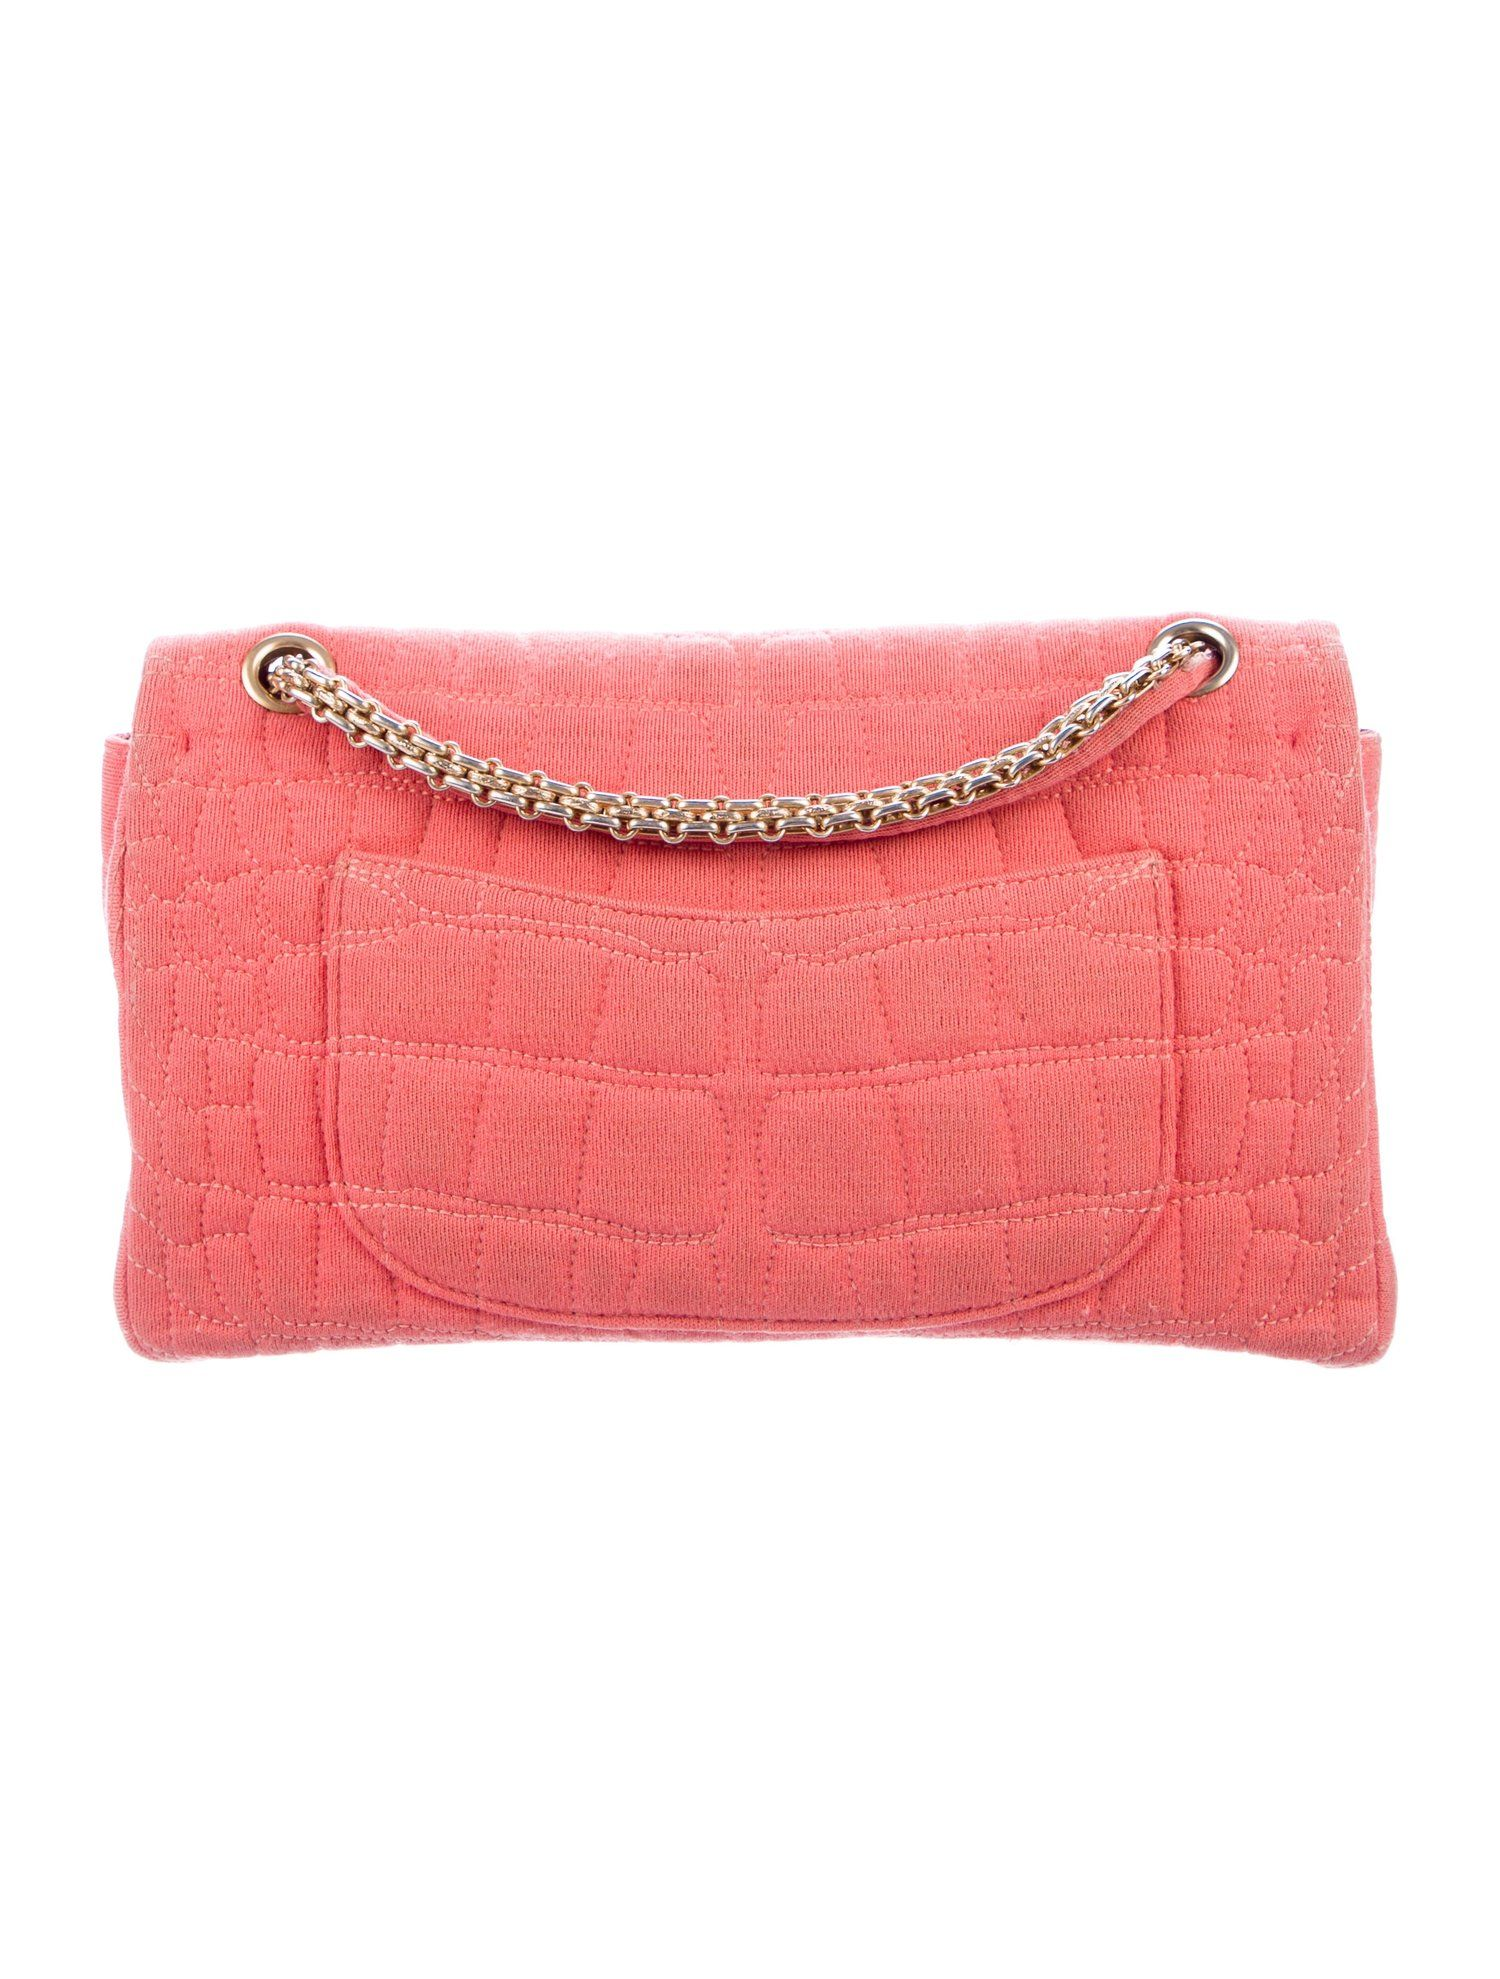 9bb855d8ac9a Jersey Croc Reissue Double Flap Bag in 2019 | Styles Inspiration ...